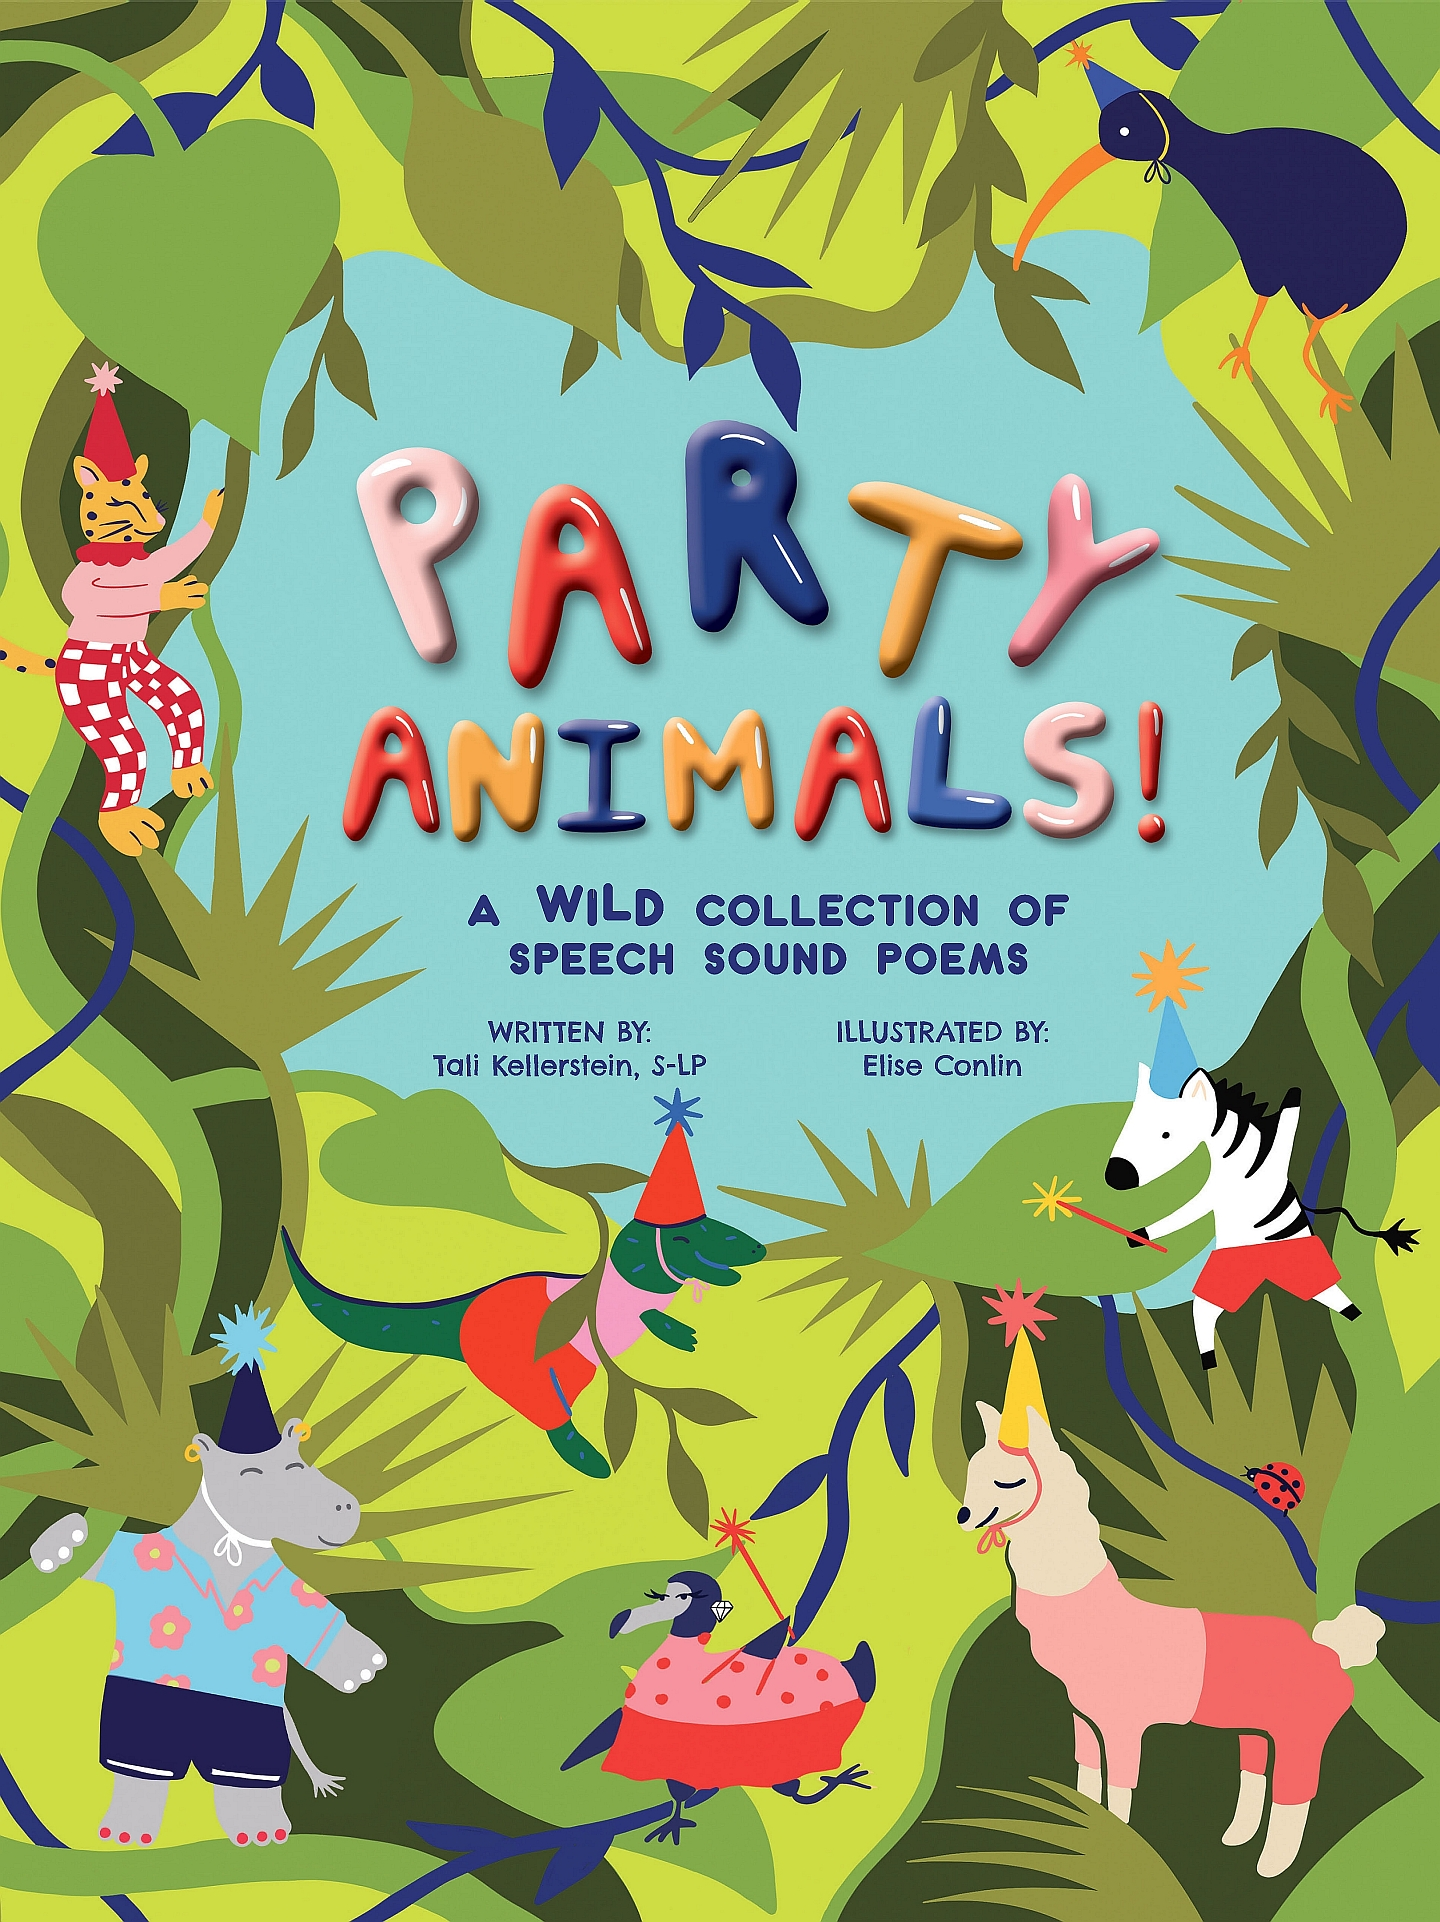 Party Animals: A Wild Collection of Speech Sound Poems